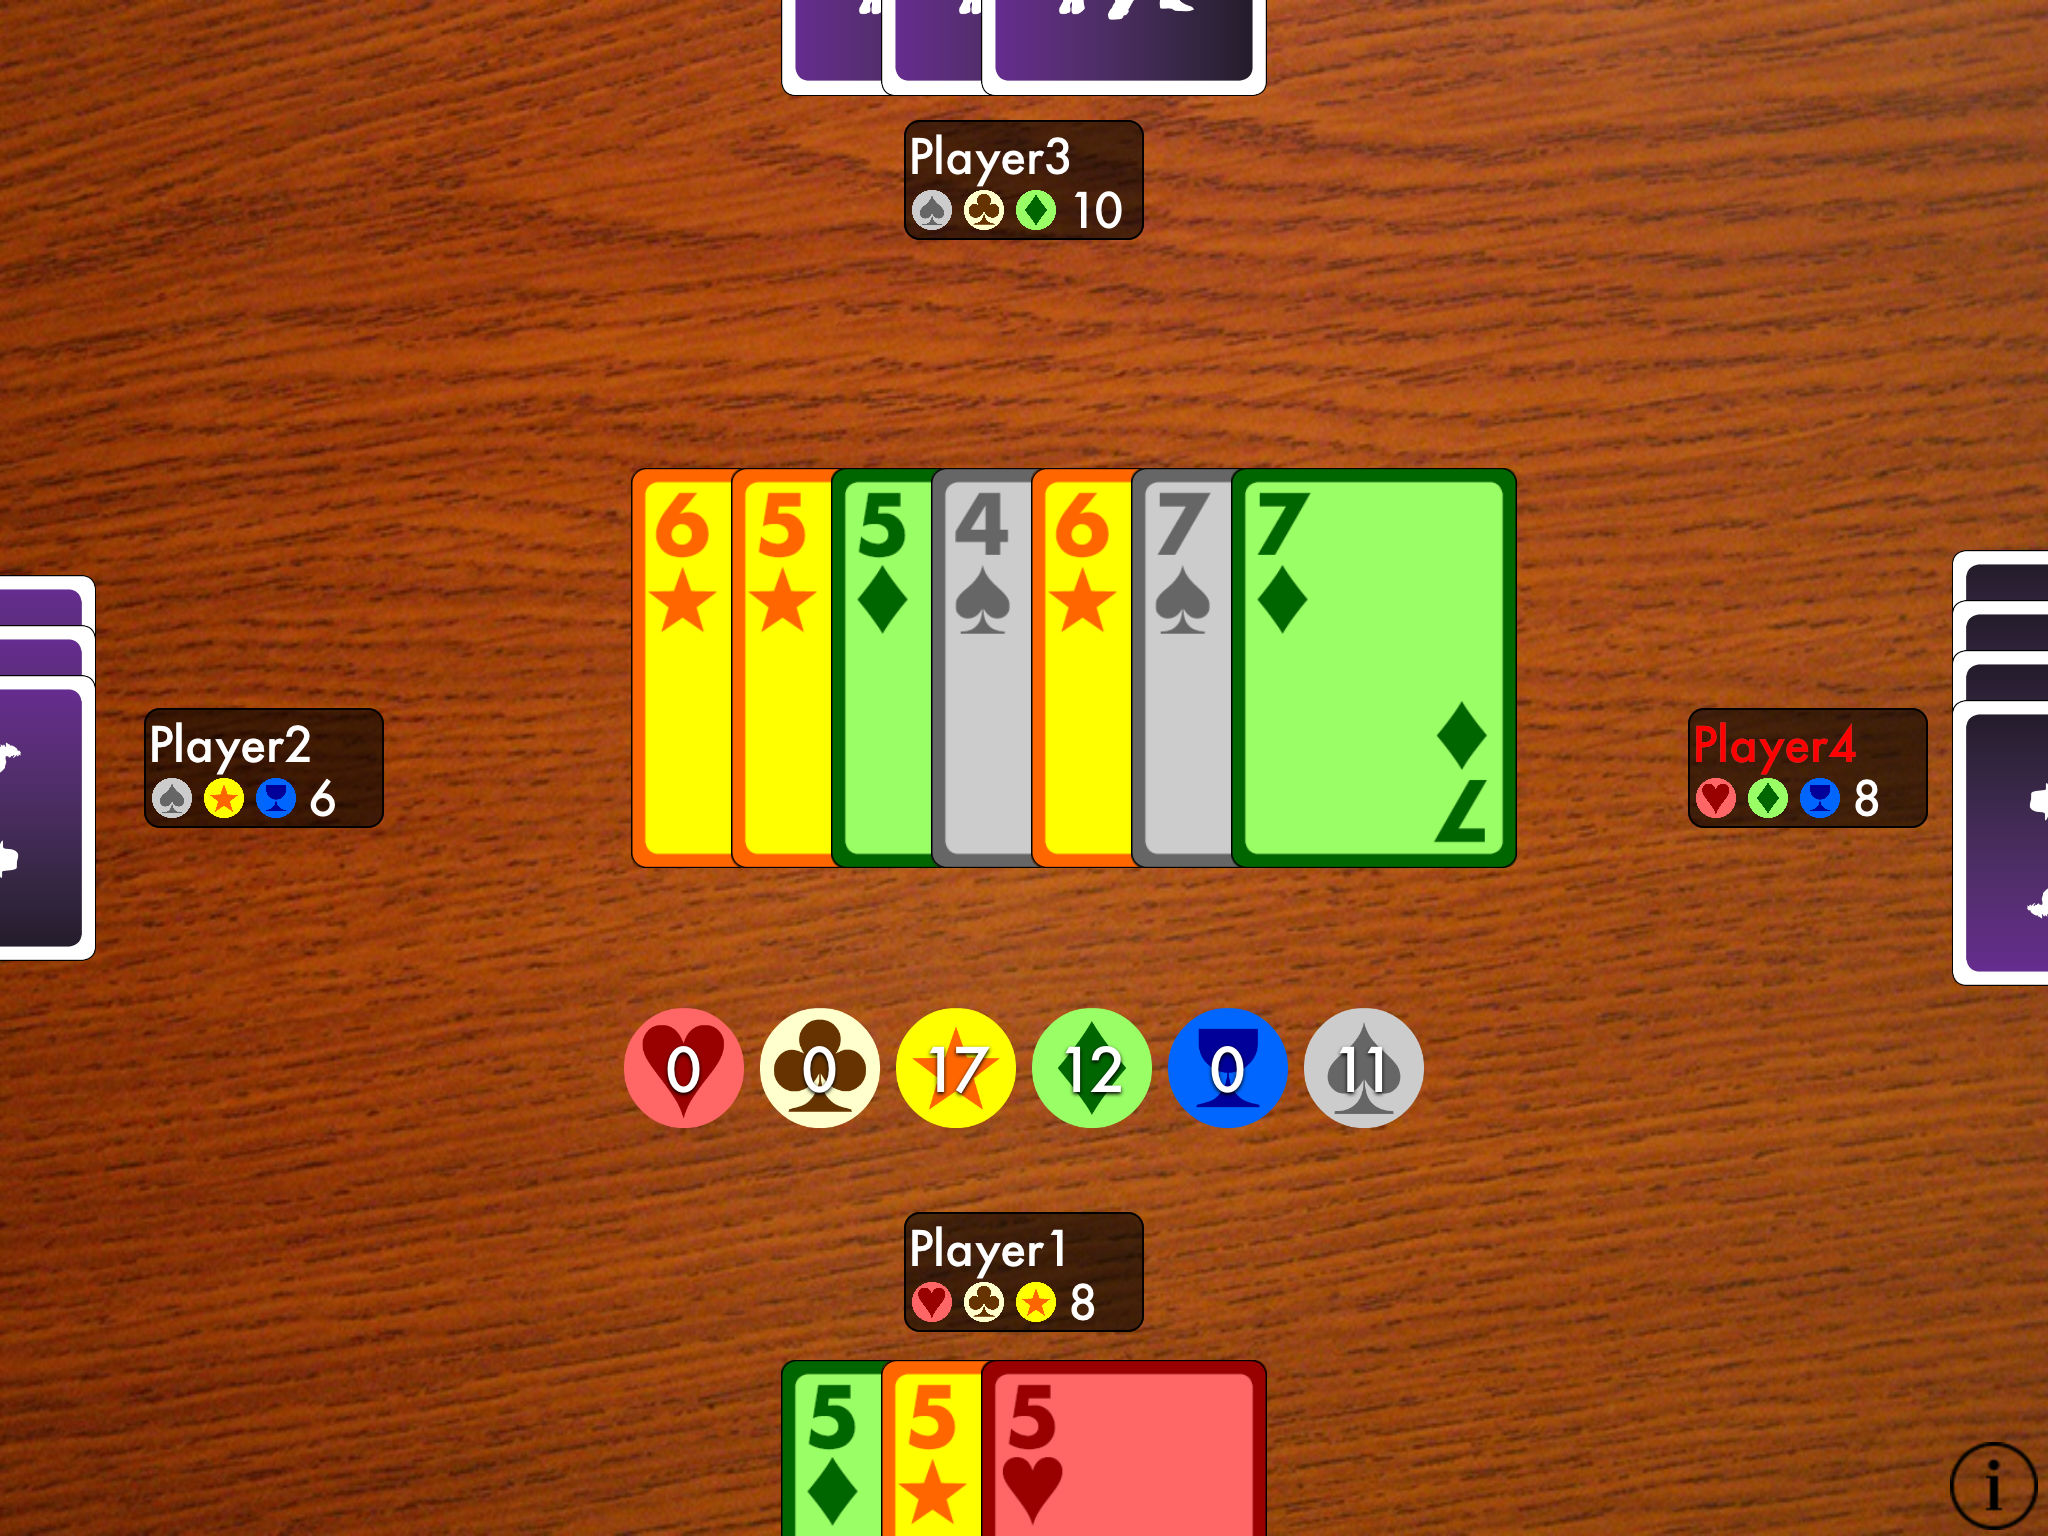 Trick-taking card game Cahoots is free for the first time for iPhone and iPad